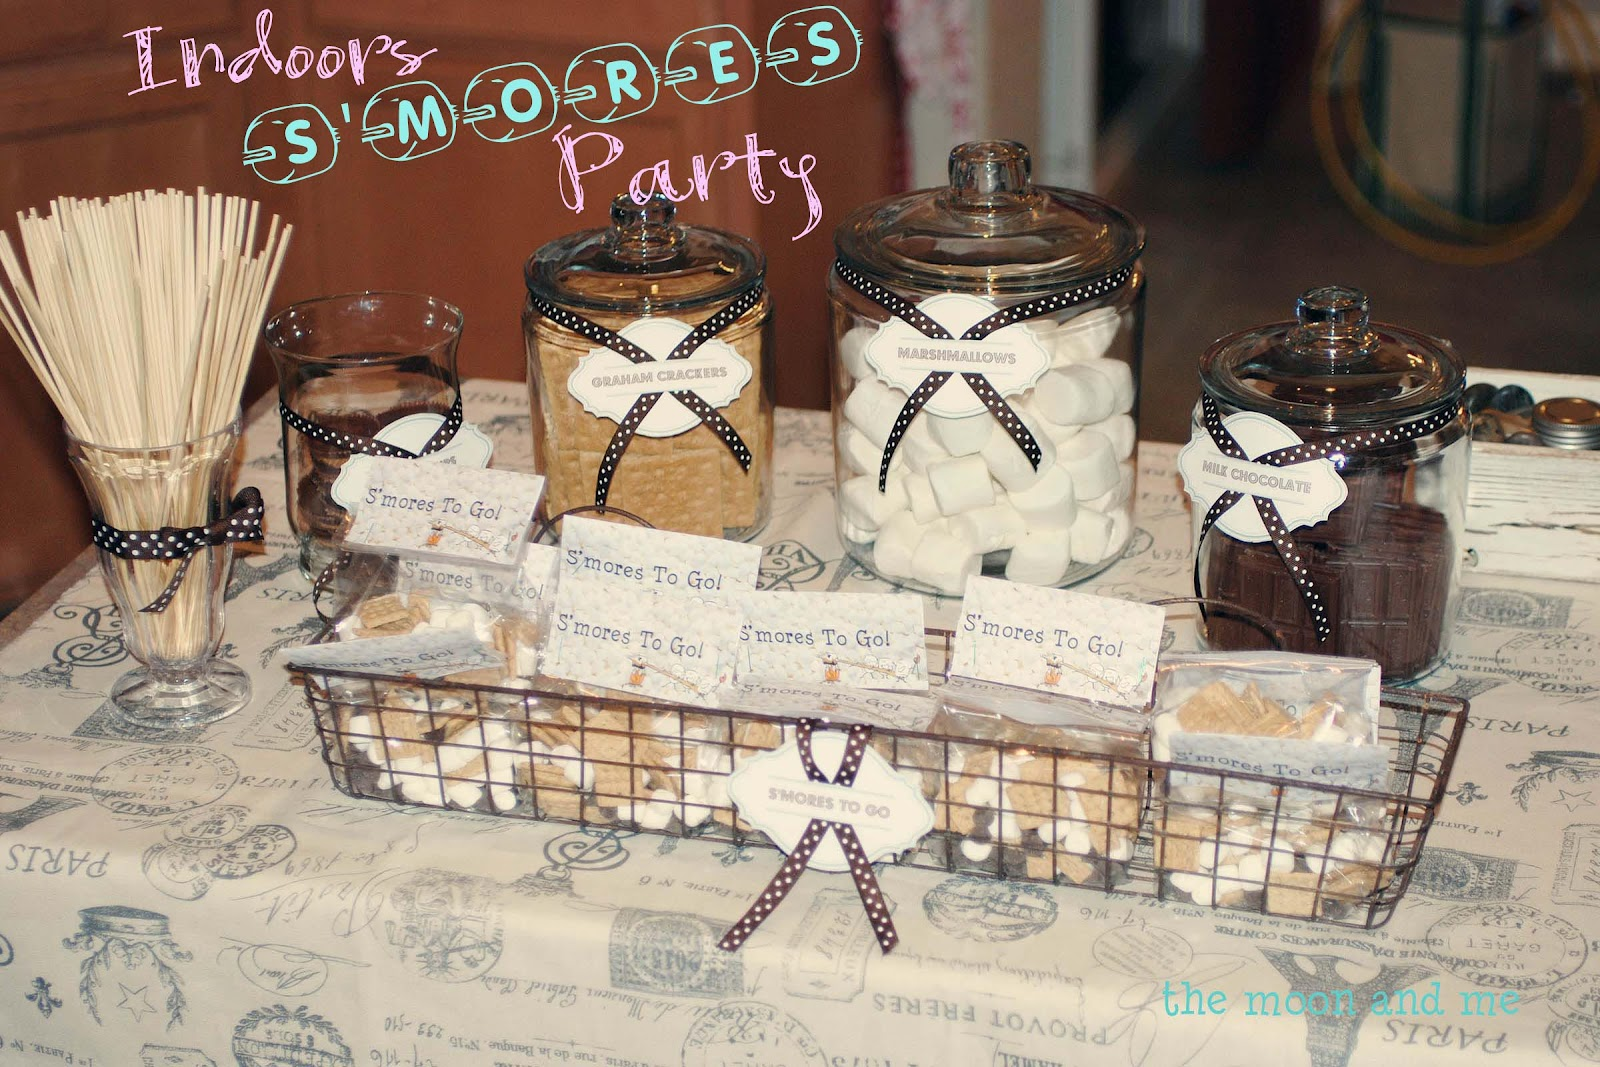 The Moon and Me: Indoors S'mores Party